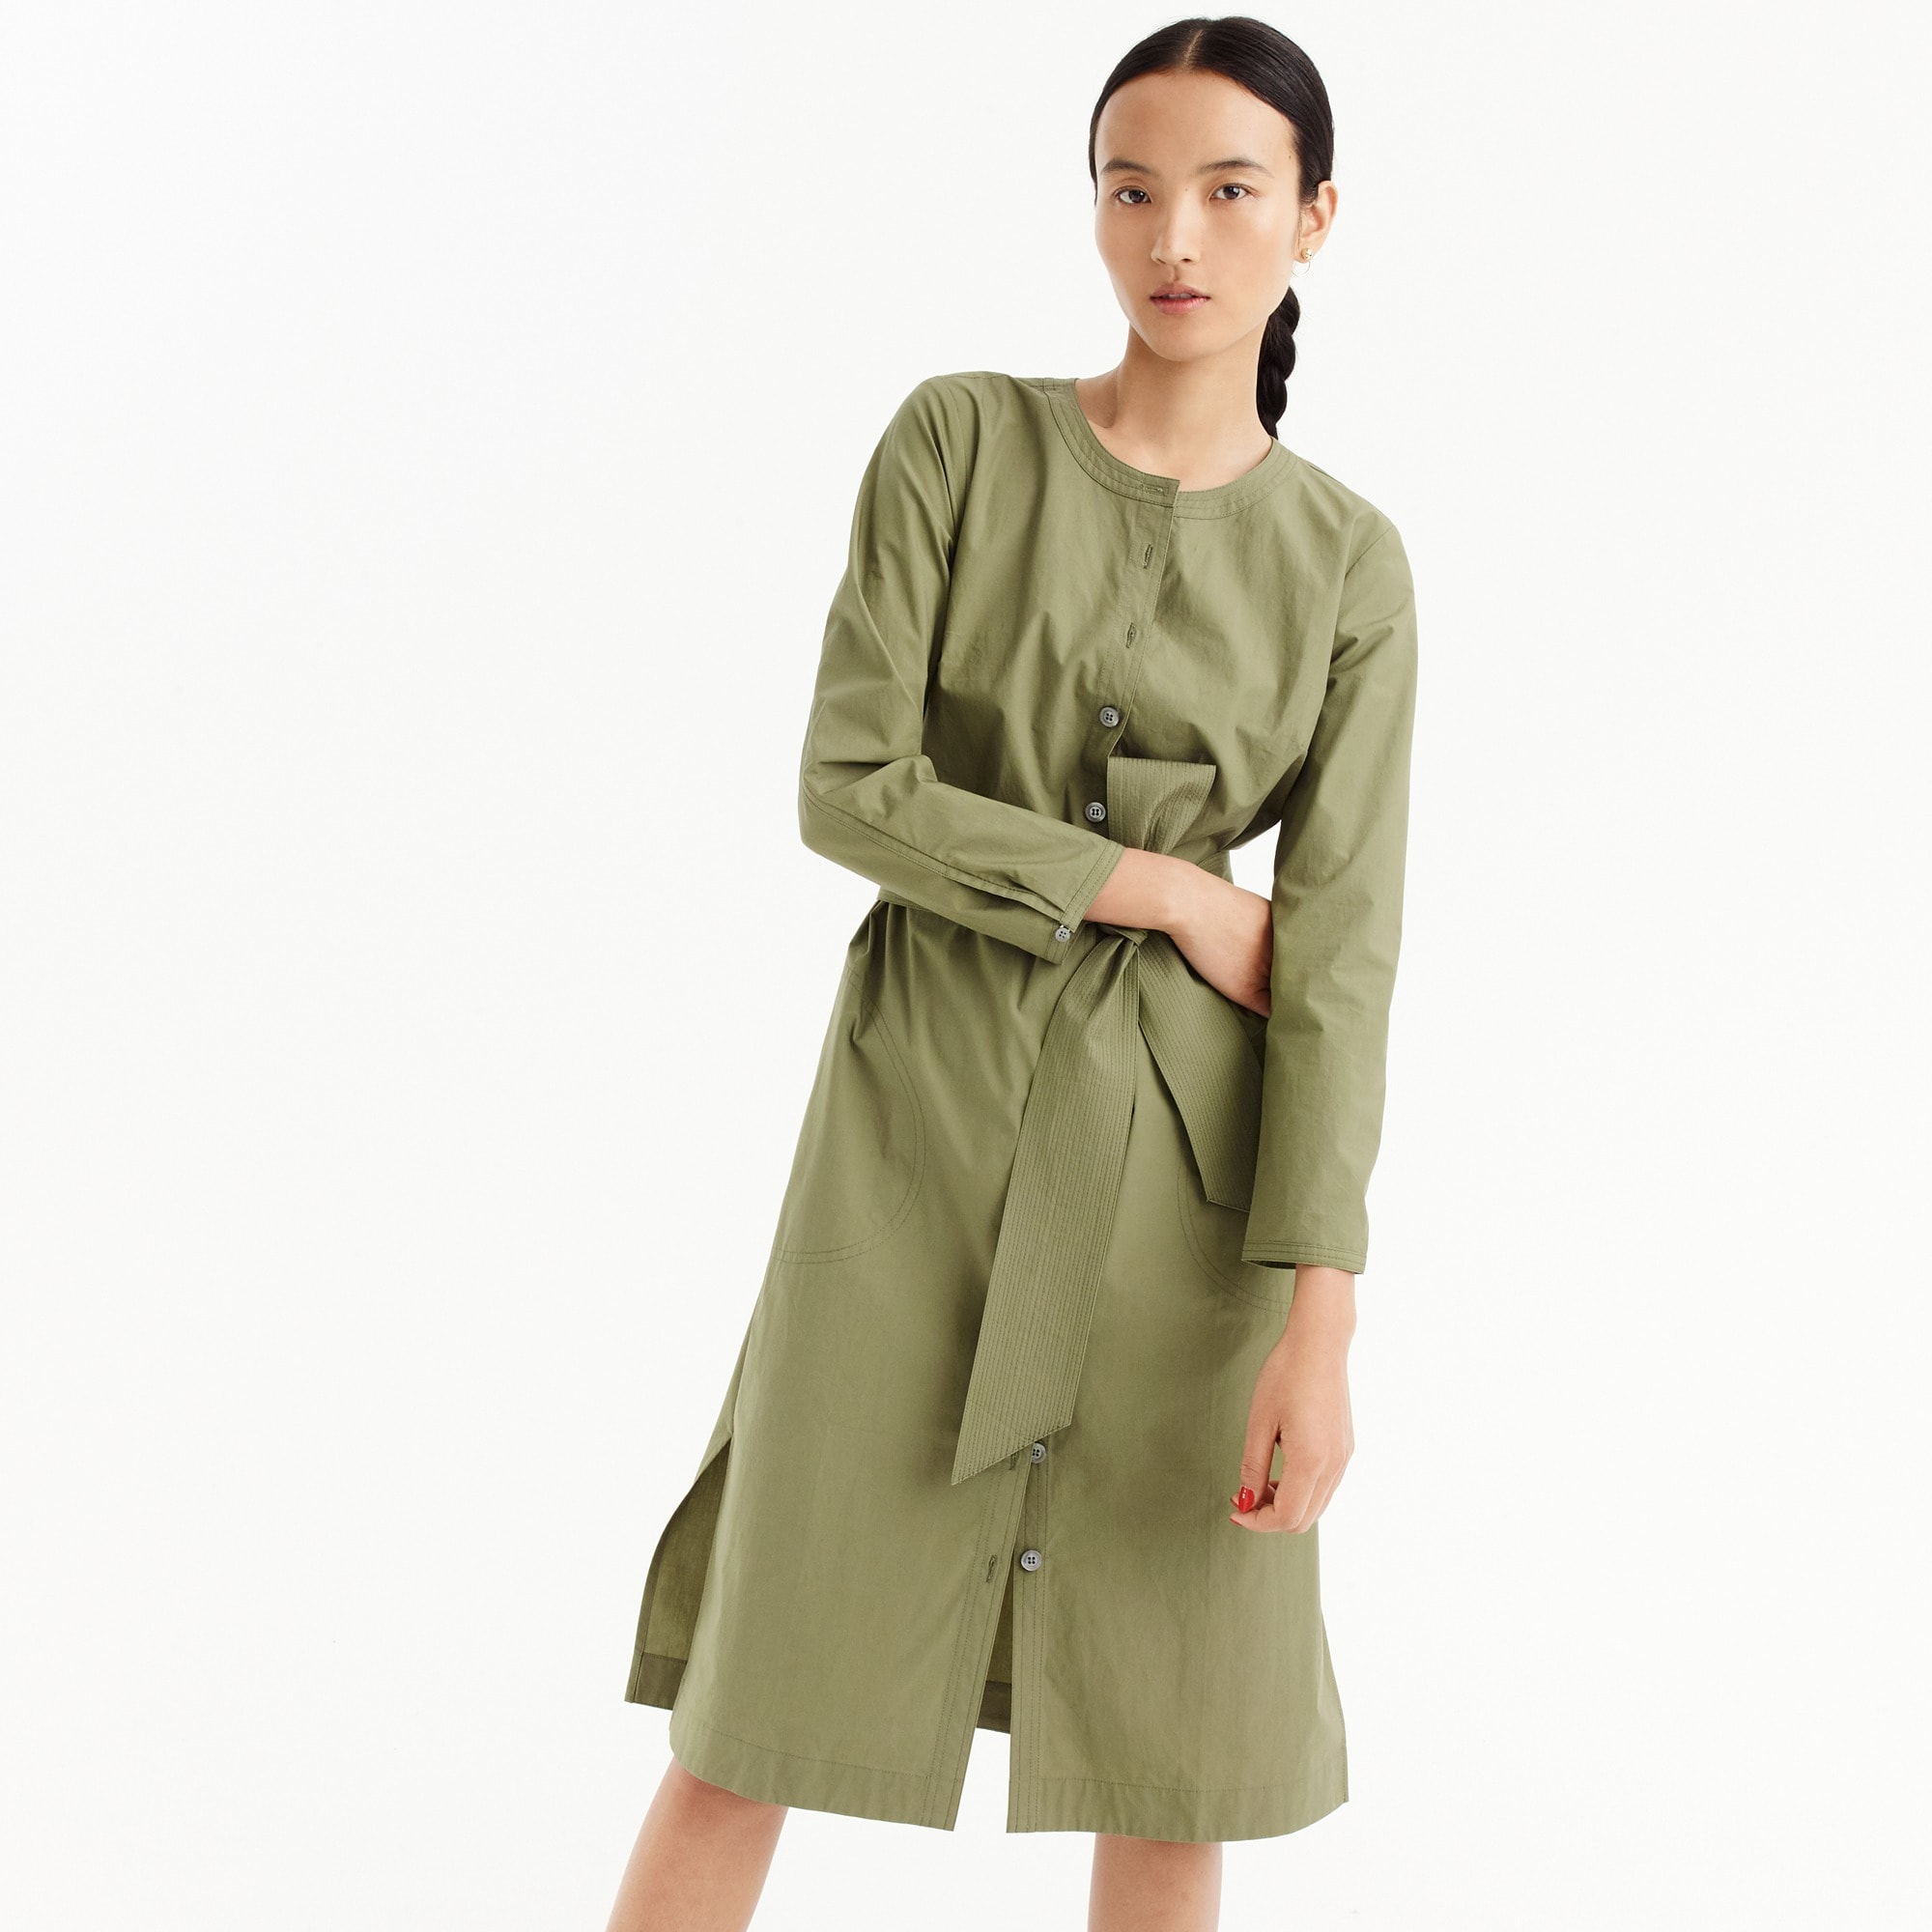 Image 1 for Petite long-sleeve shirtdress